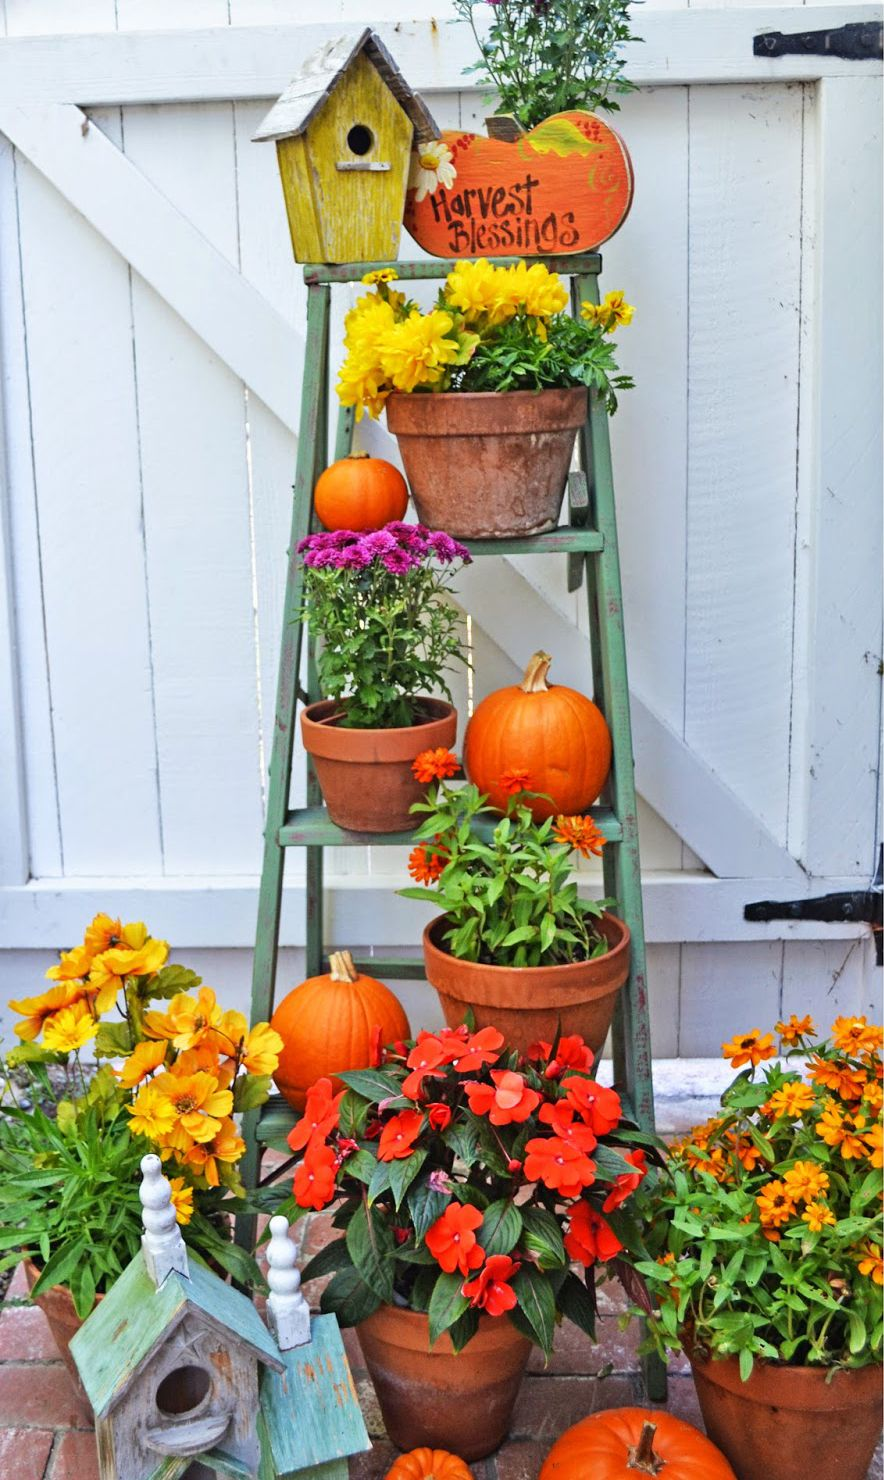 67 Best Fall Porch Decorating Ideas Featuring All The Colors Of The Season Fall Decorations Porch Fall Garden Decor Front Porch Decorating